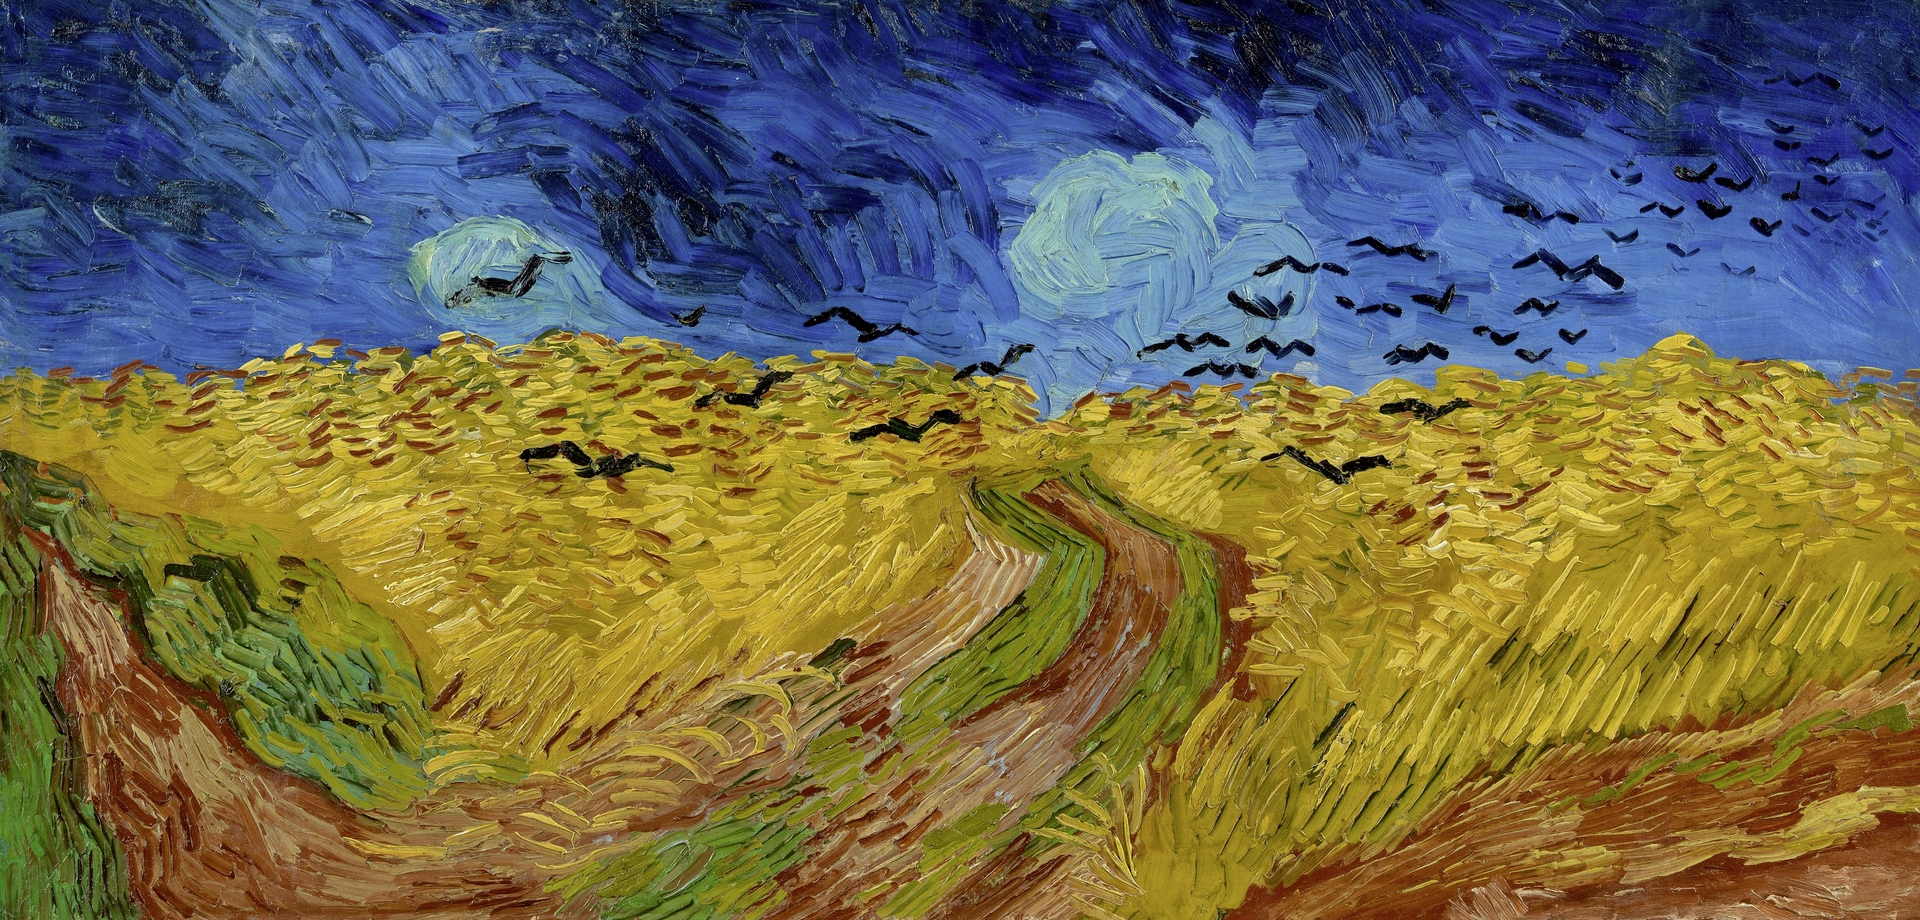 Wheatfield with Crows (1890) by Vincent Van Gogh - Pako Campo